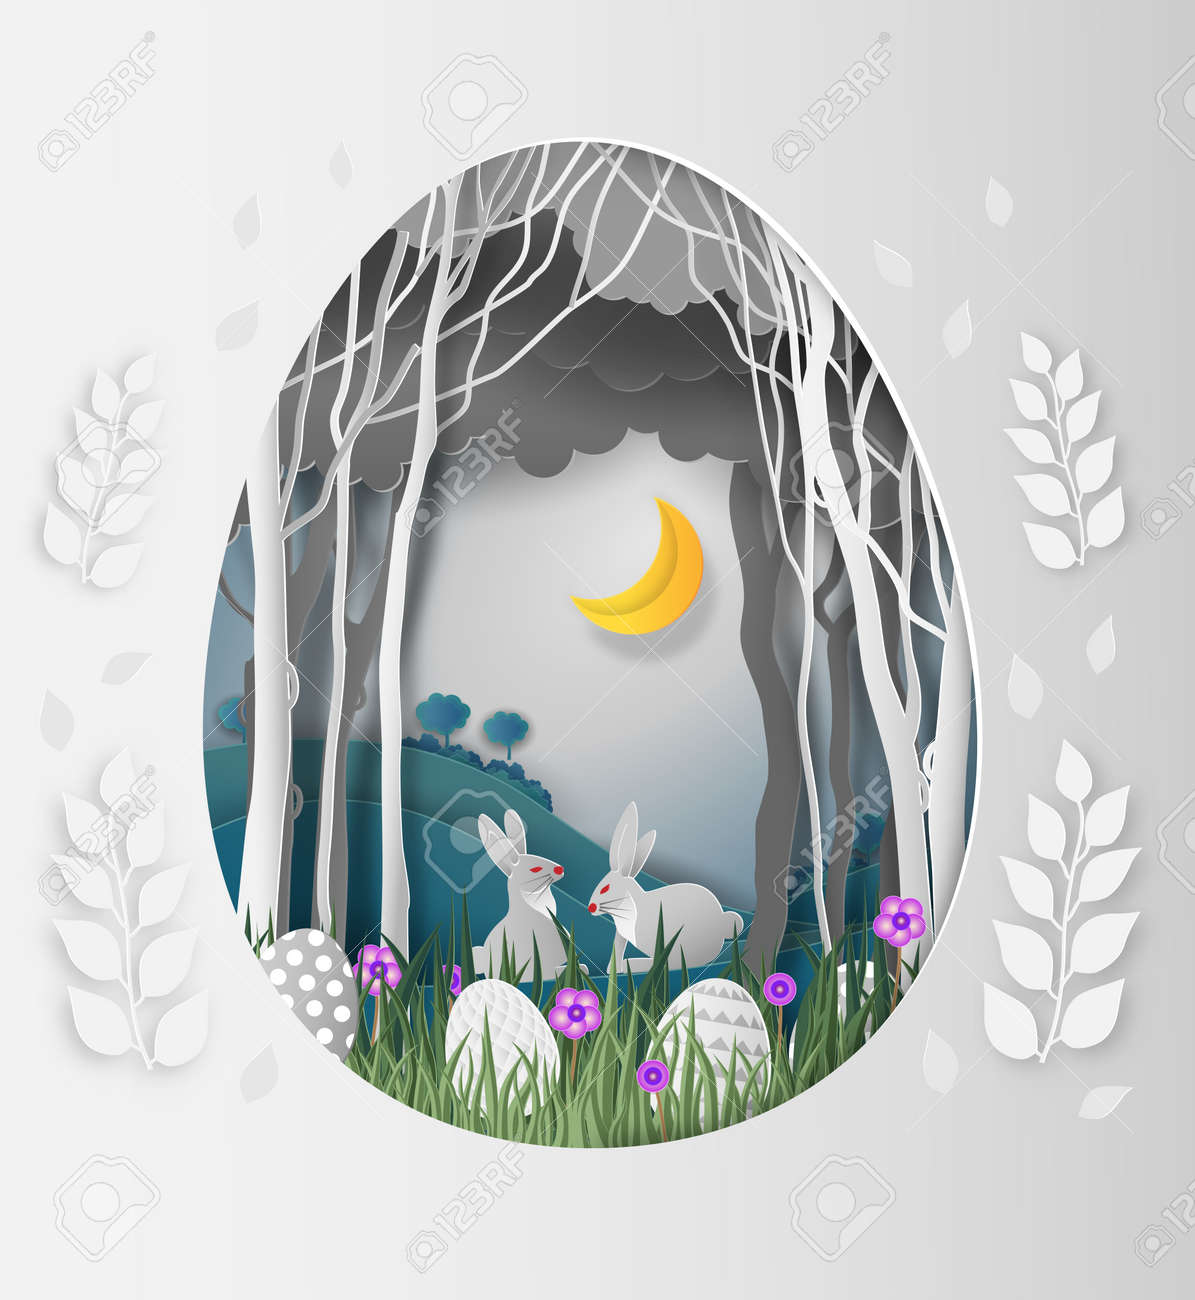 Creative ideas of Easter day, frame Egg shape of paper cut with rabbit and leaves in the forest at night and the moon. paper art and digital craft style. vector Illustration - 95966913